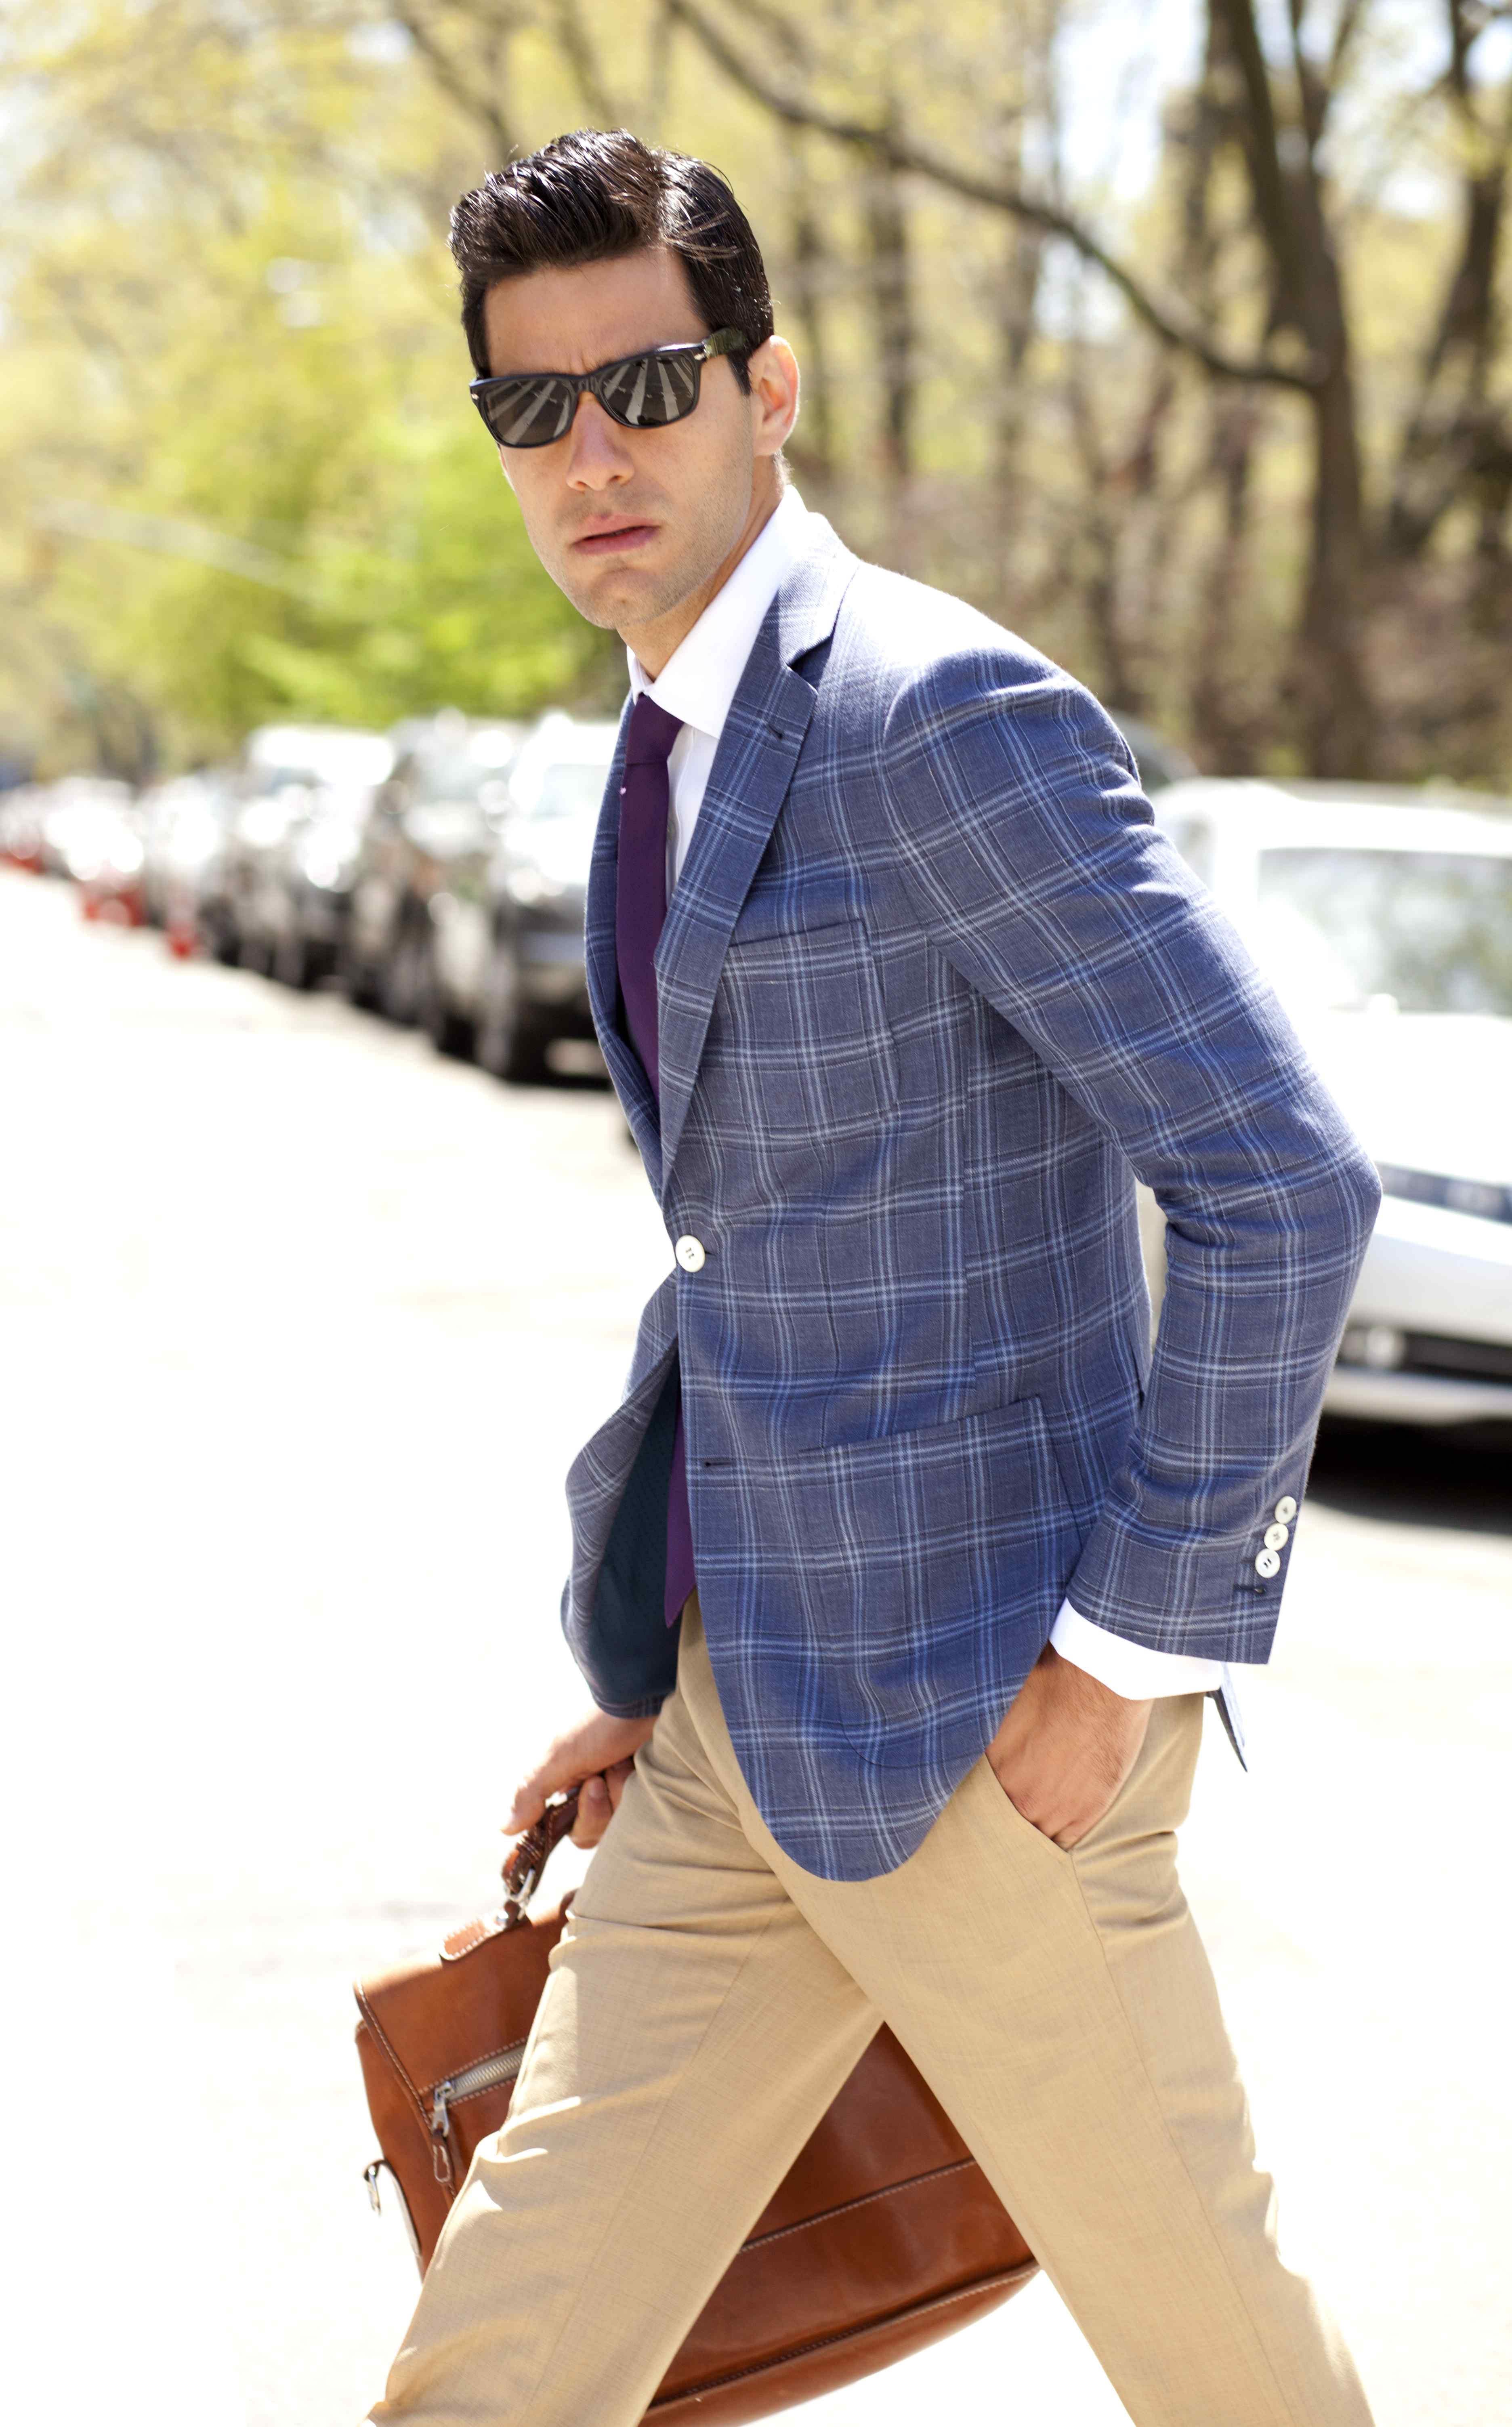 Knot Standard Sets The Standard For Men S Tailored Suits Smf